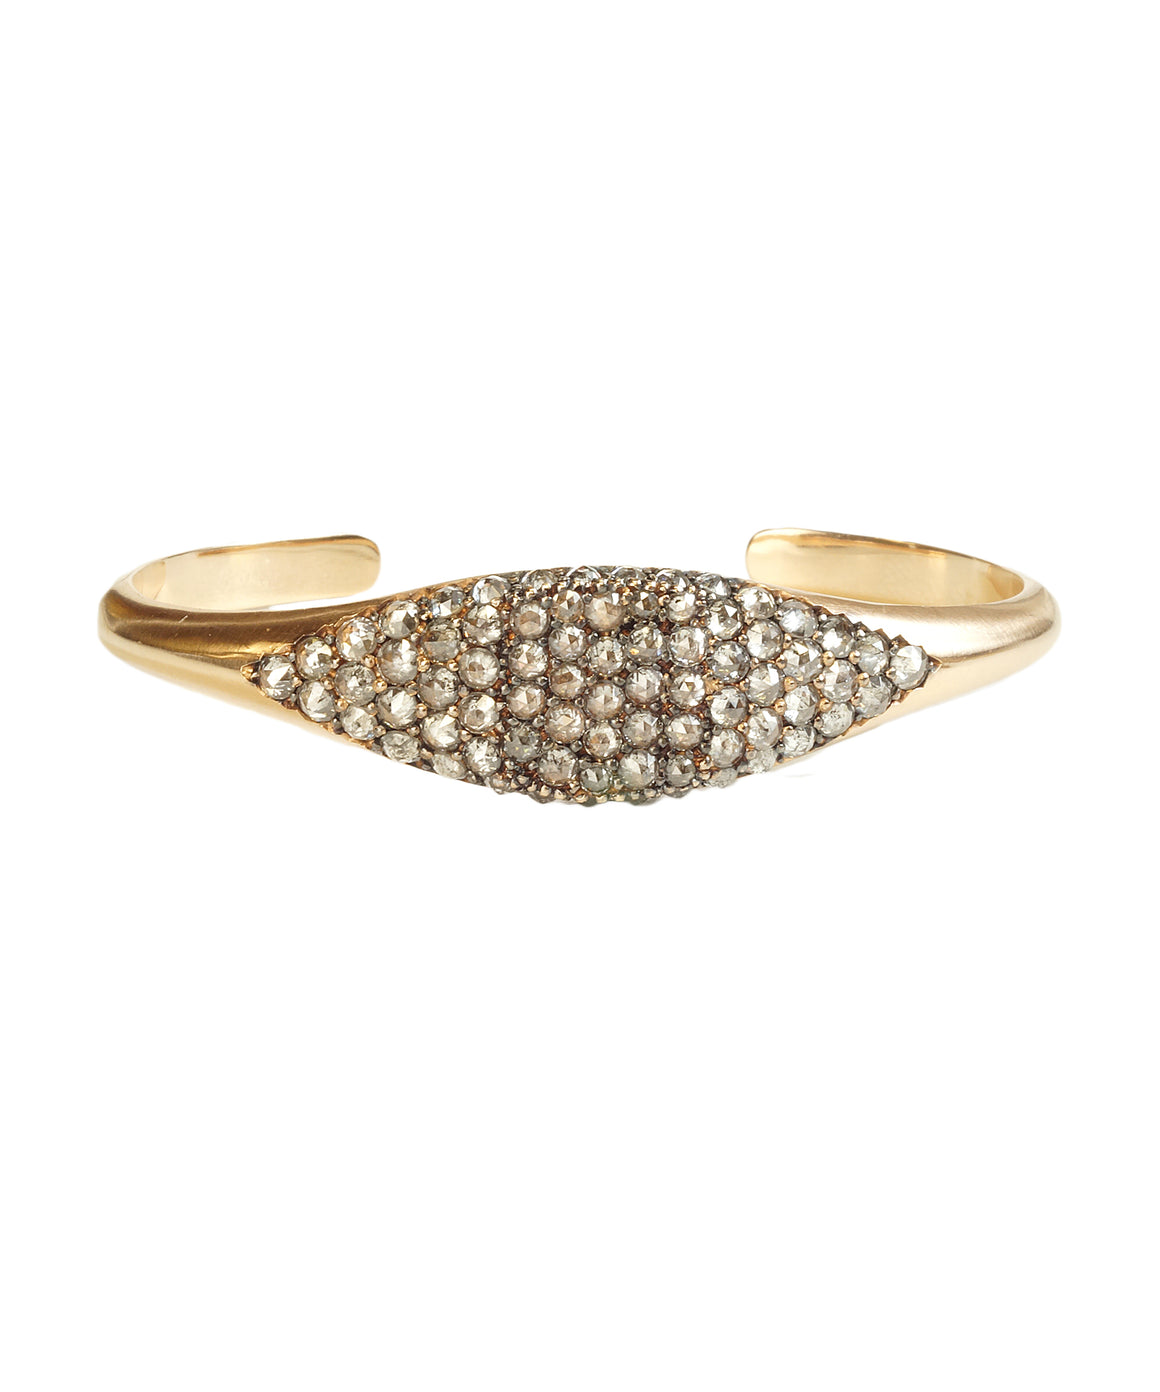 Grey diamond cuff bracelet